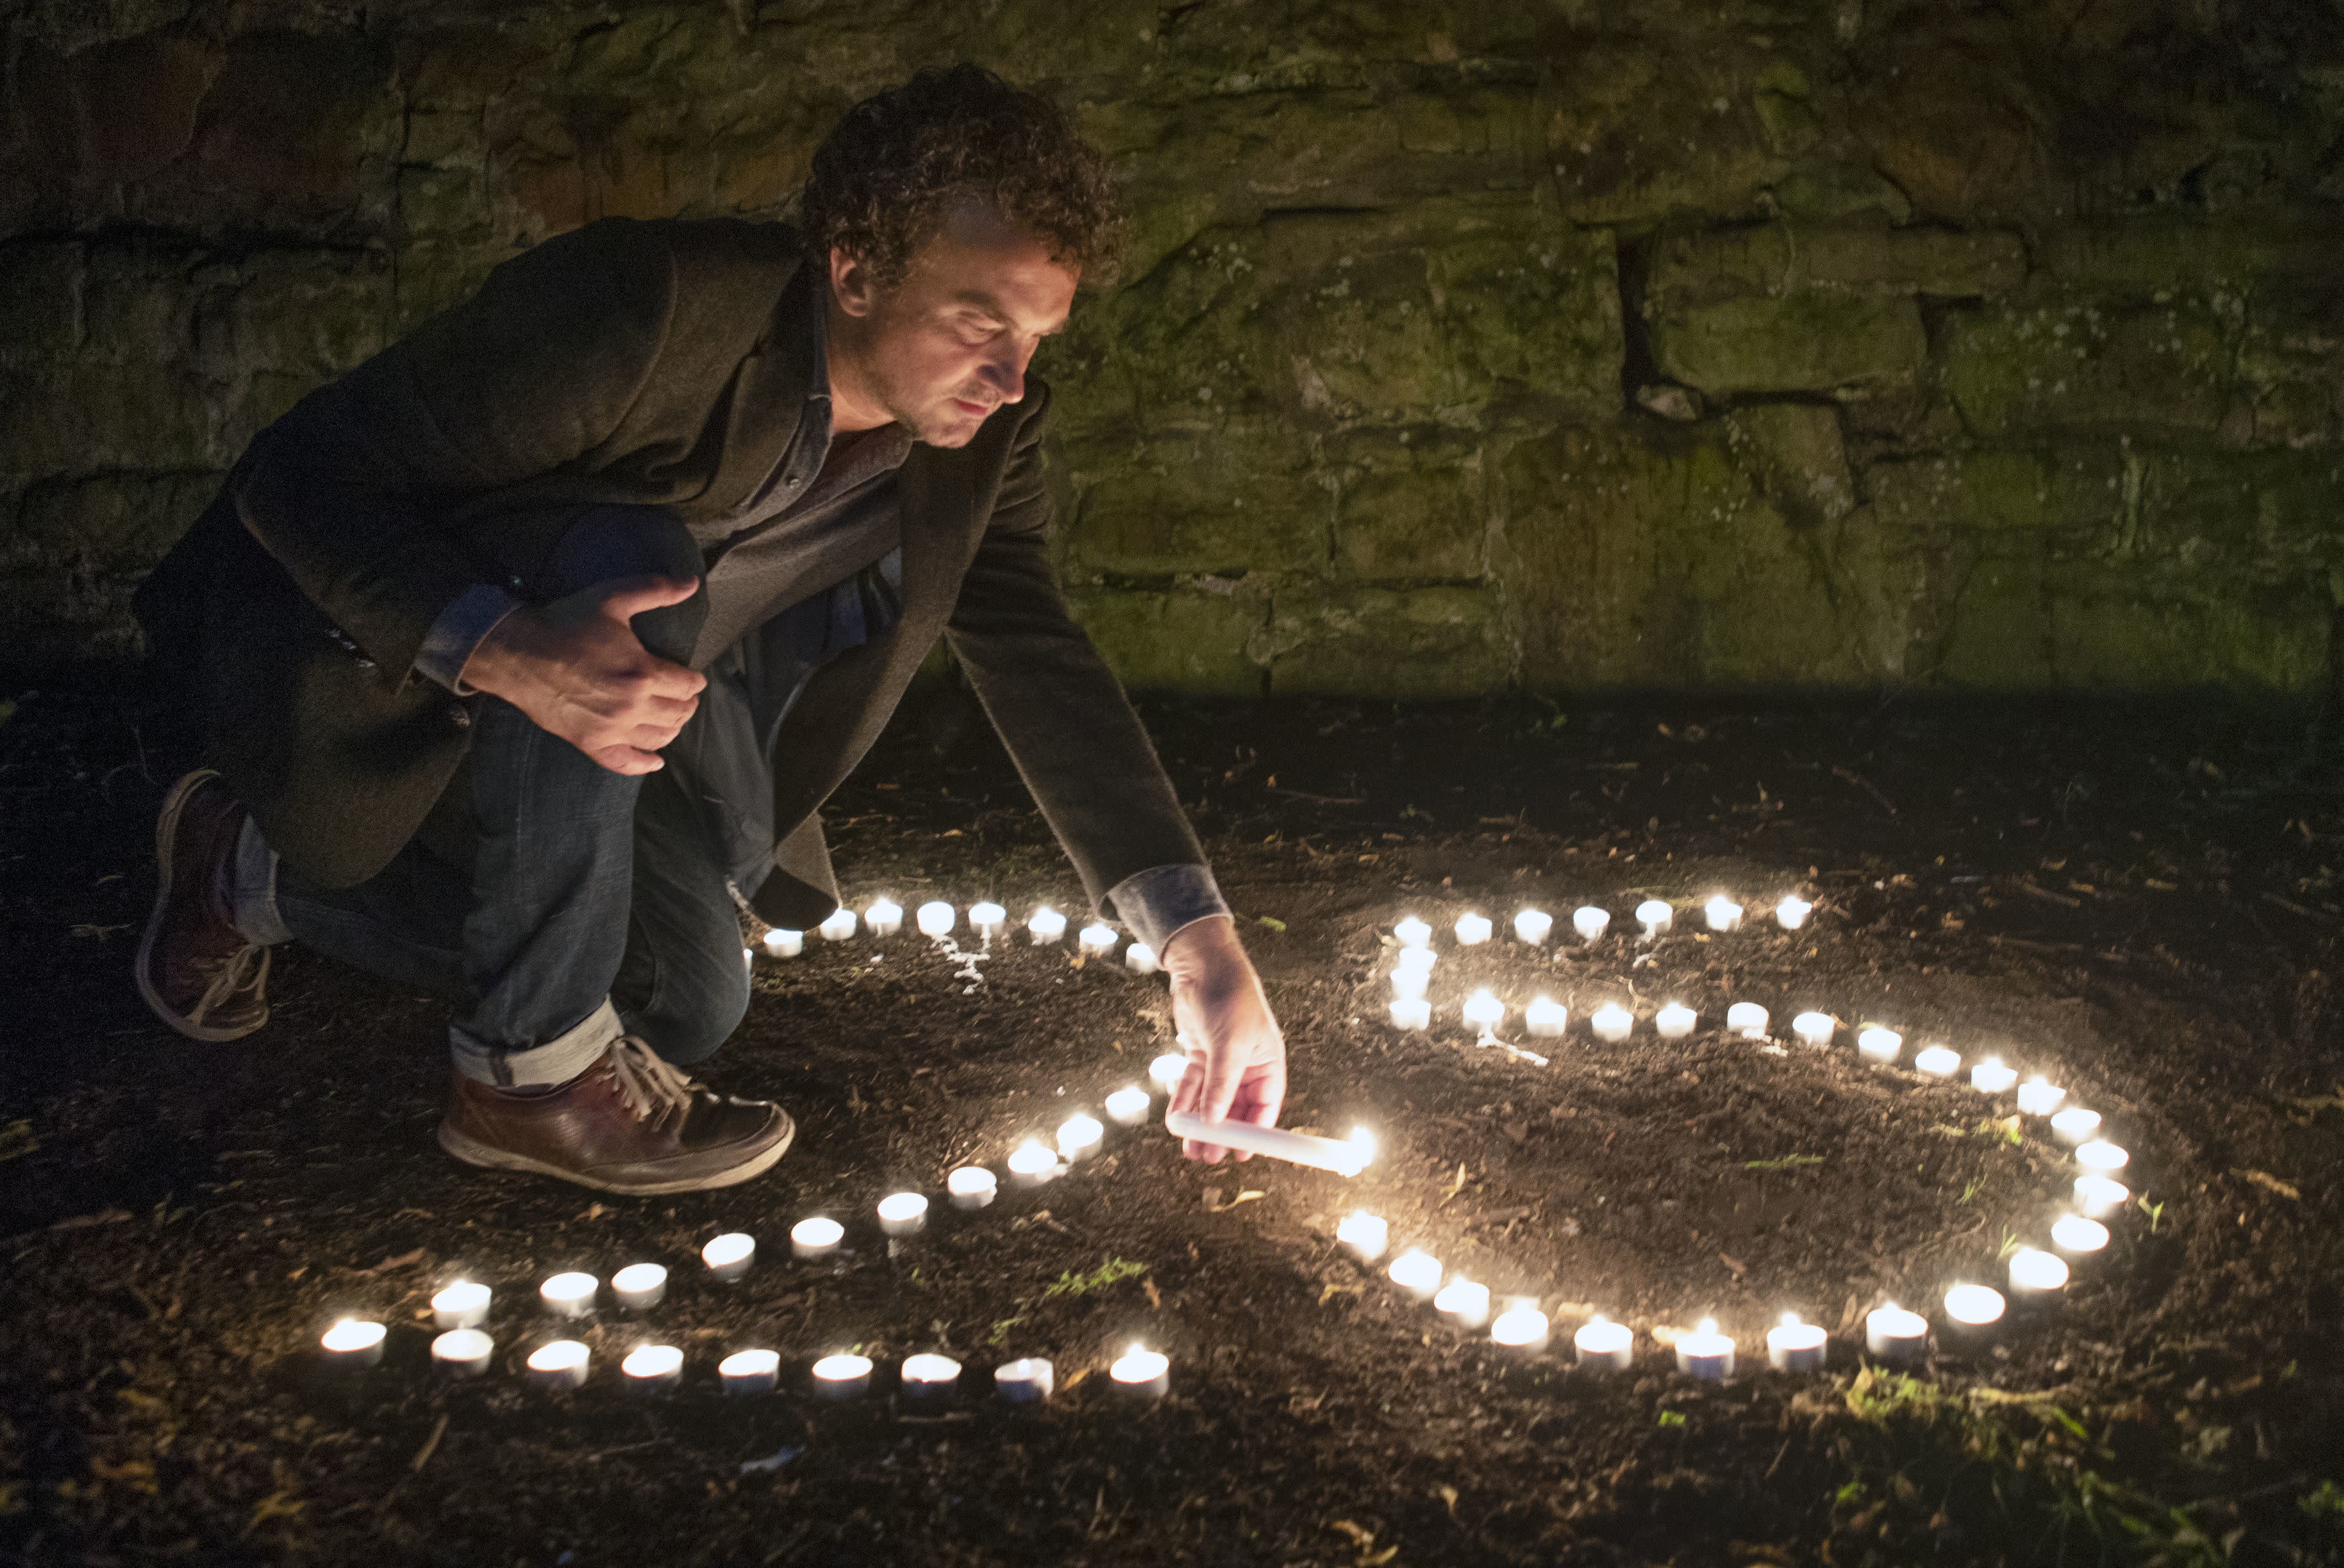 BAFTA award-winning film director Samir Mehanovic, who came to the UK as an immigrant from the Bosnian war in 1995 and now lives in Scotland, lights candles to commemorate the 25th anniversary of the Srebrenica genocide, in Edinburgh, Scotland, Thursday July 9, 2020. In July 1995, Bosnian Serb forces massacred over 8,000 men and boys, an event that is officially marked on Saturday July 10, 2020. (Jane Barlow/PA via AP)